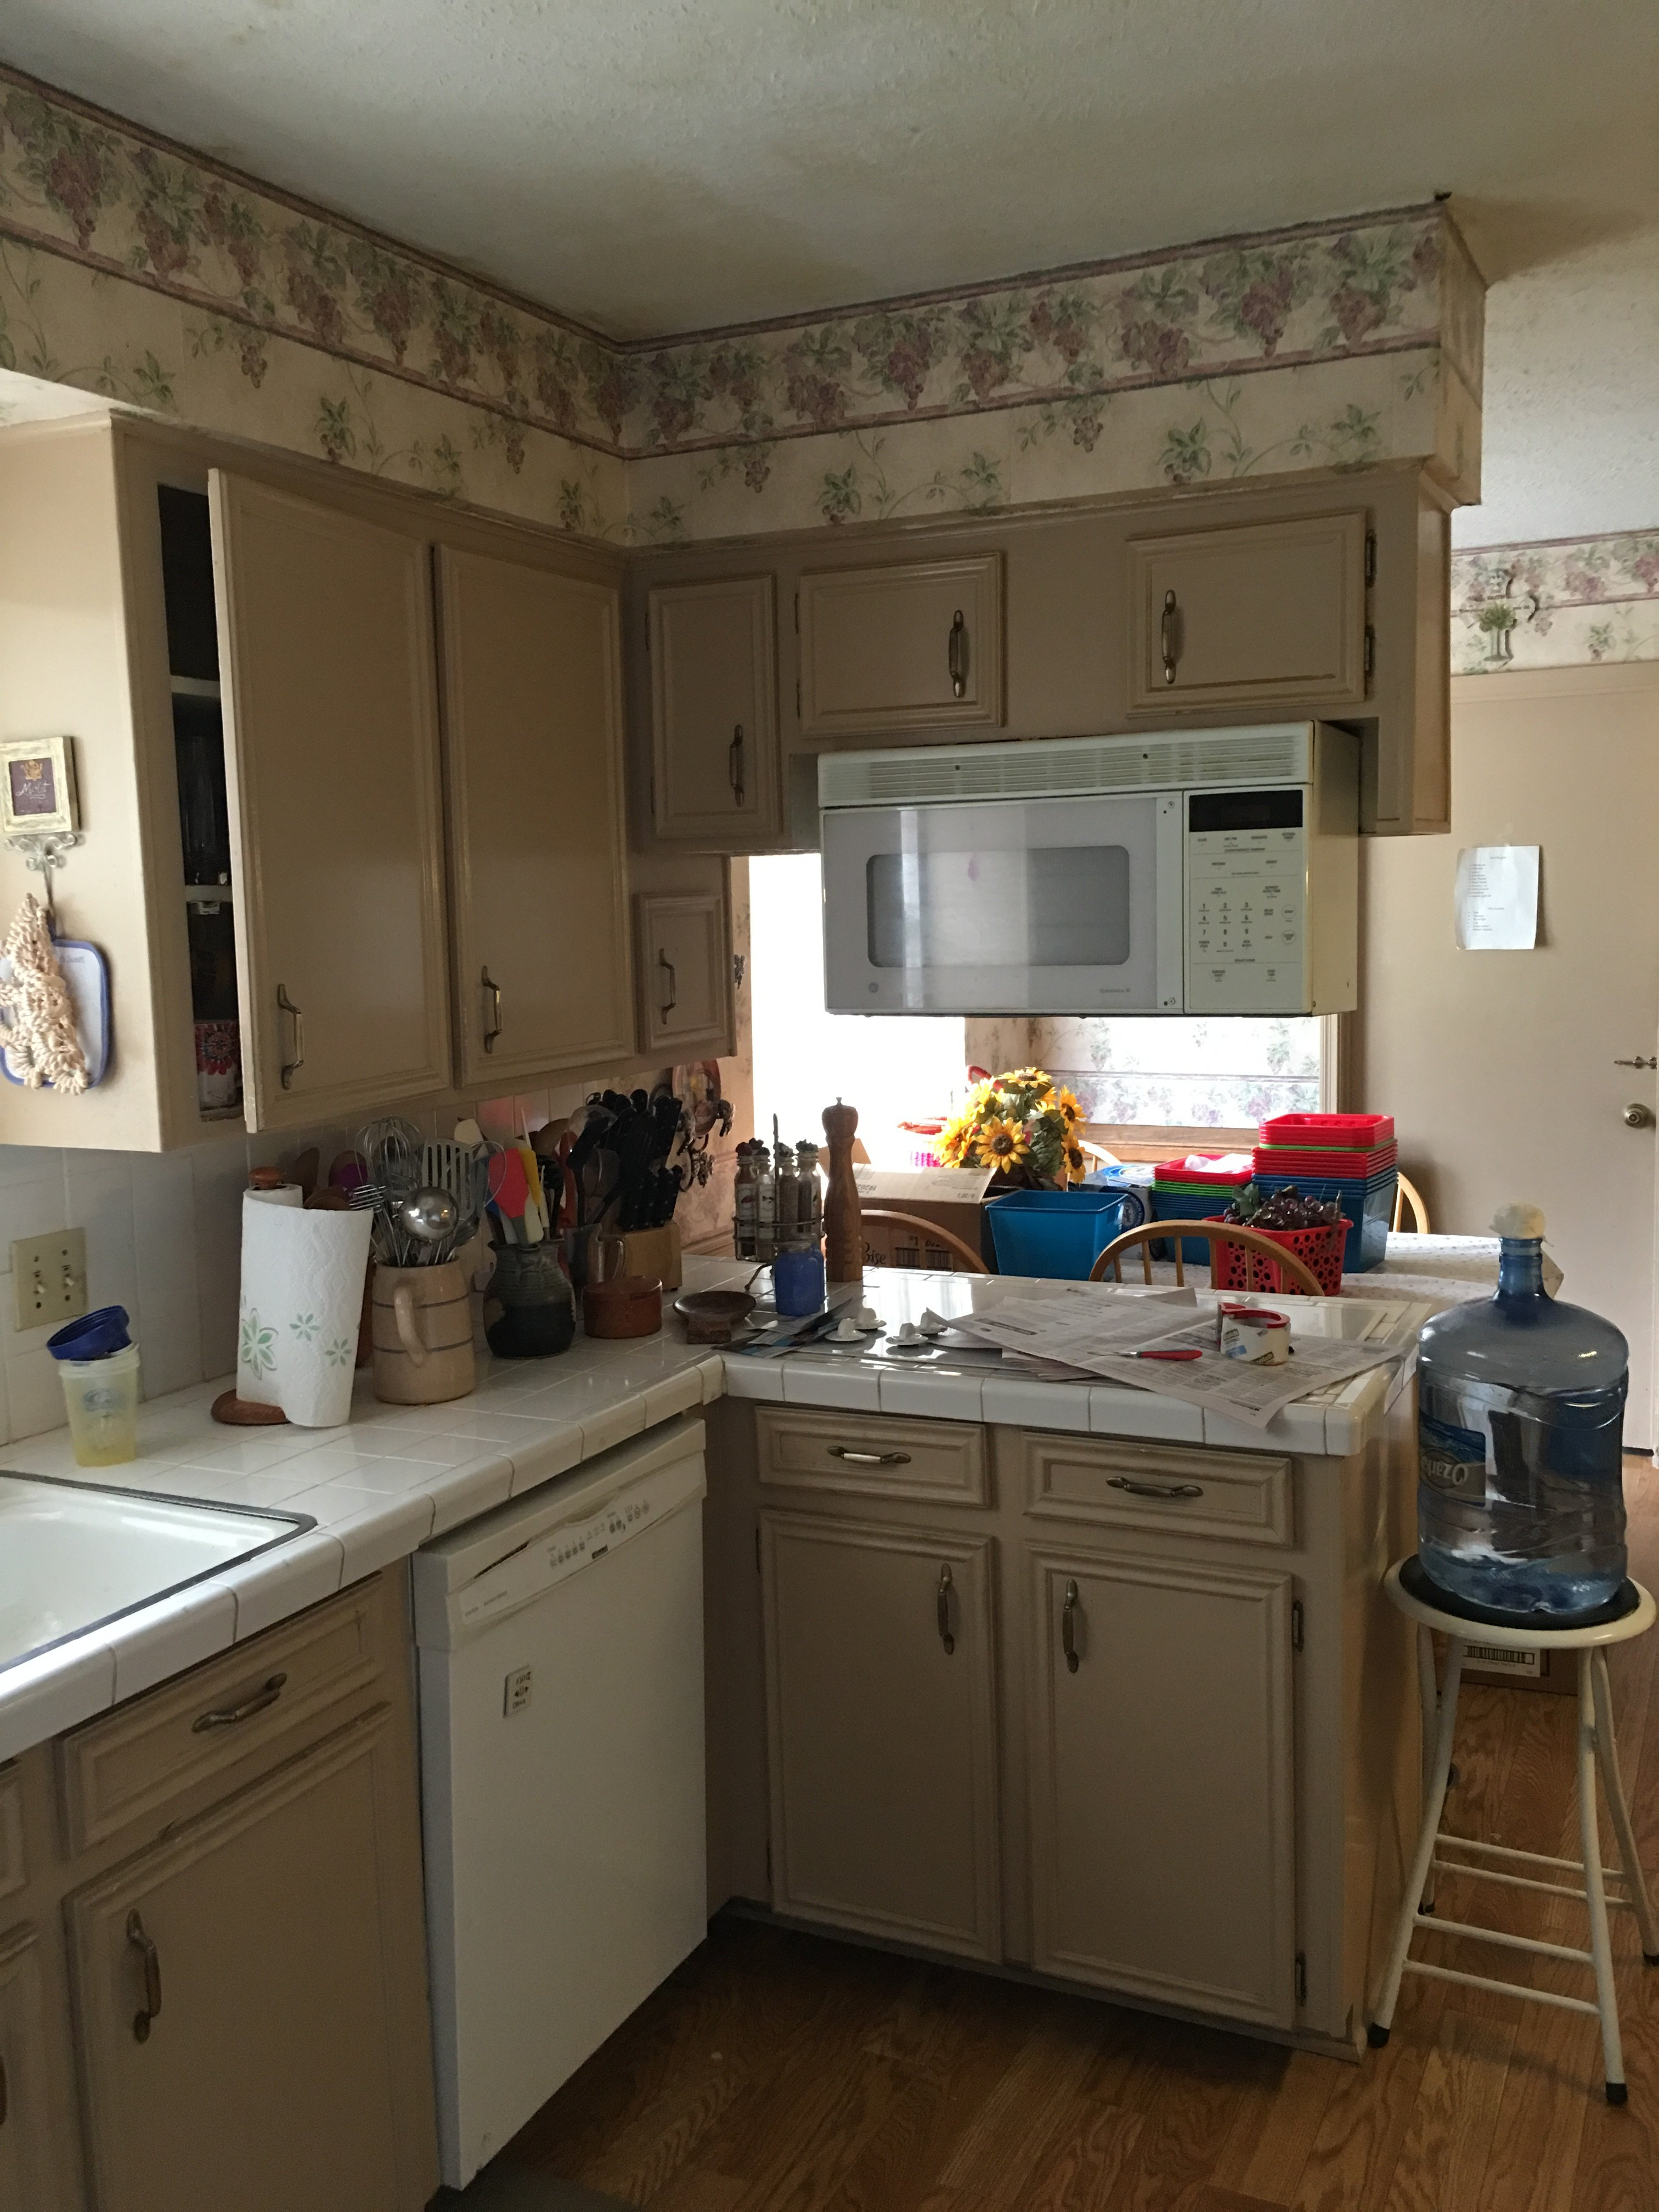 Kitchen countertops and cabinets before